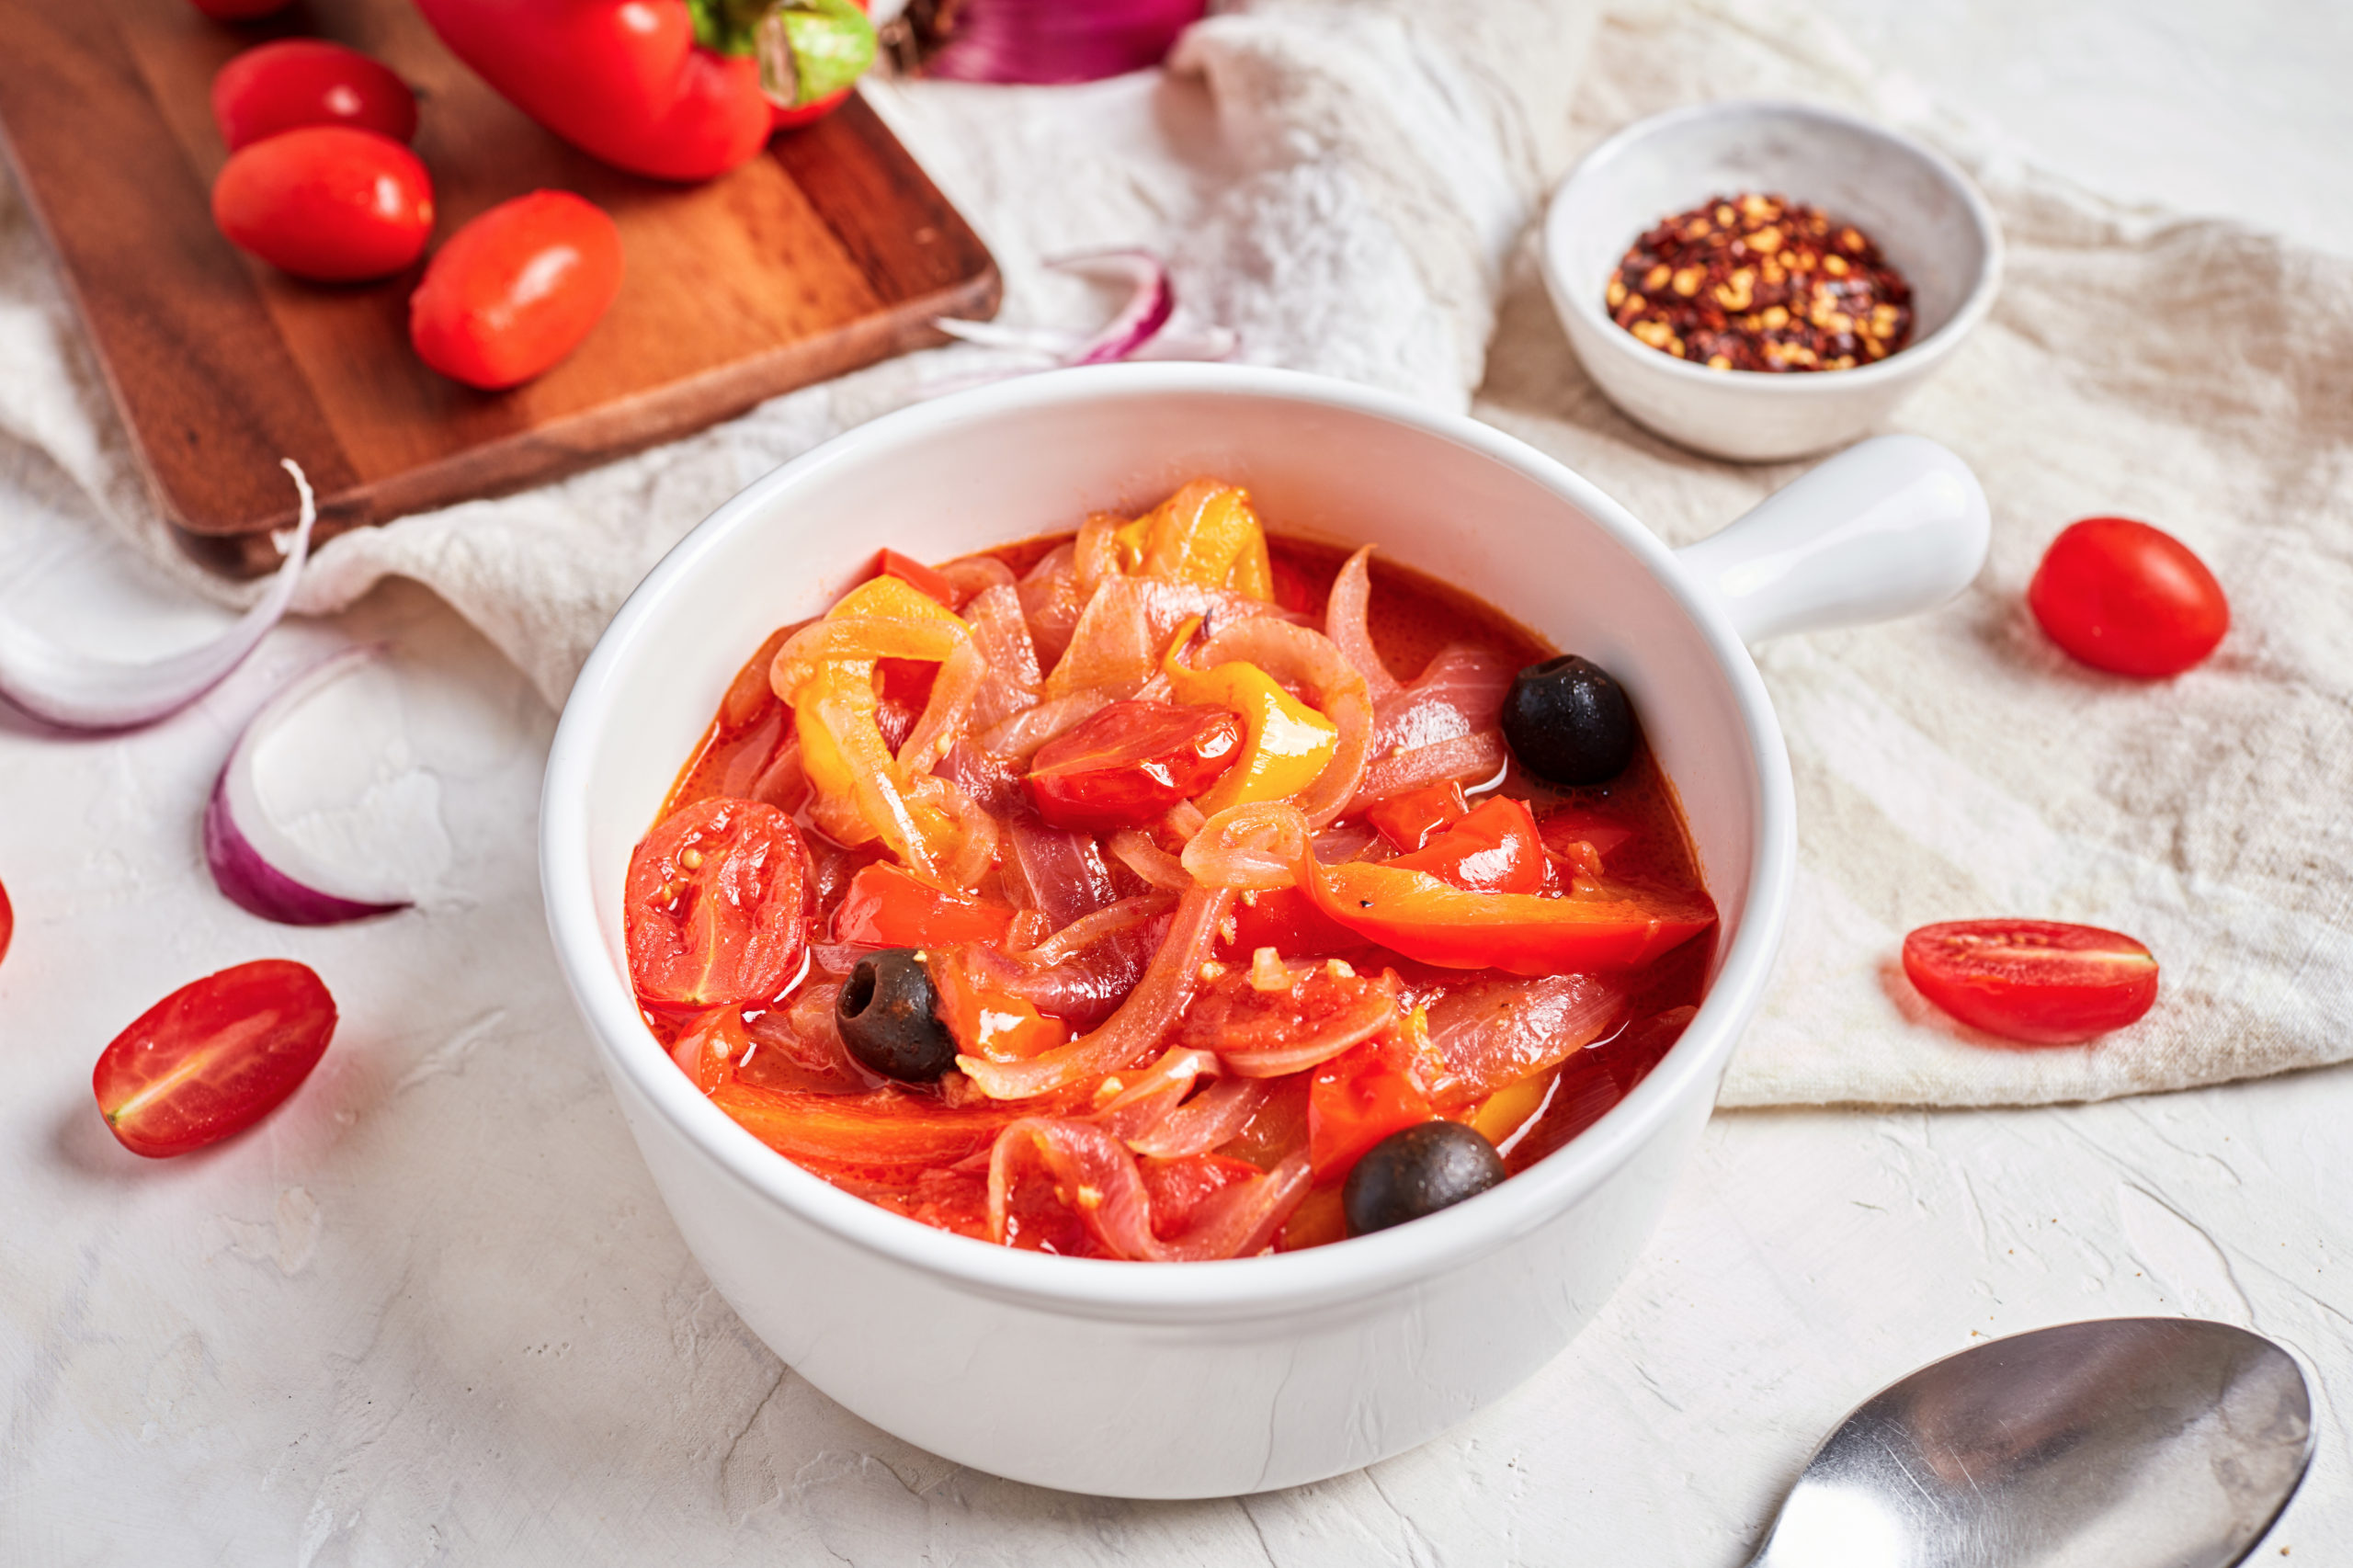 Italian Peperonata (Sweet Bell Peppers with Tomatoes and Olives)